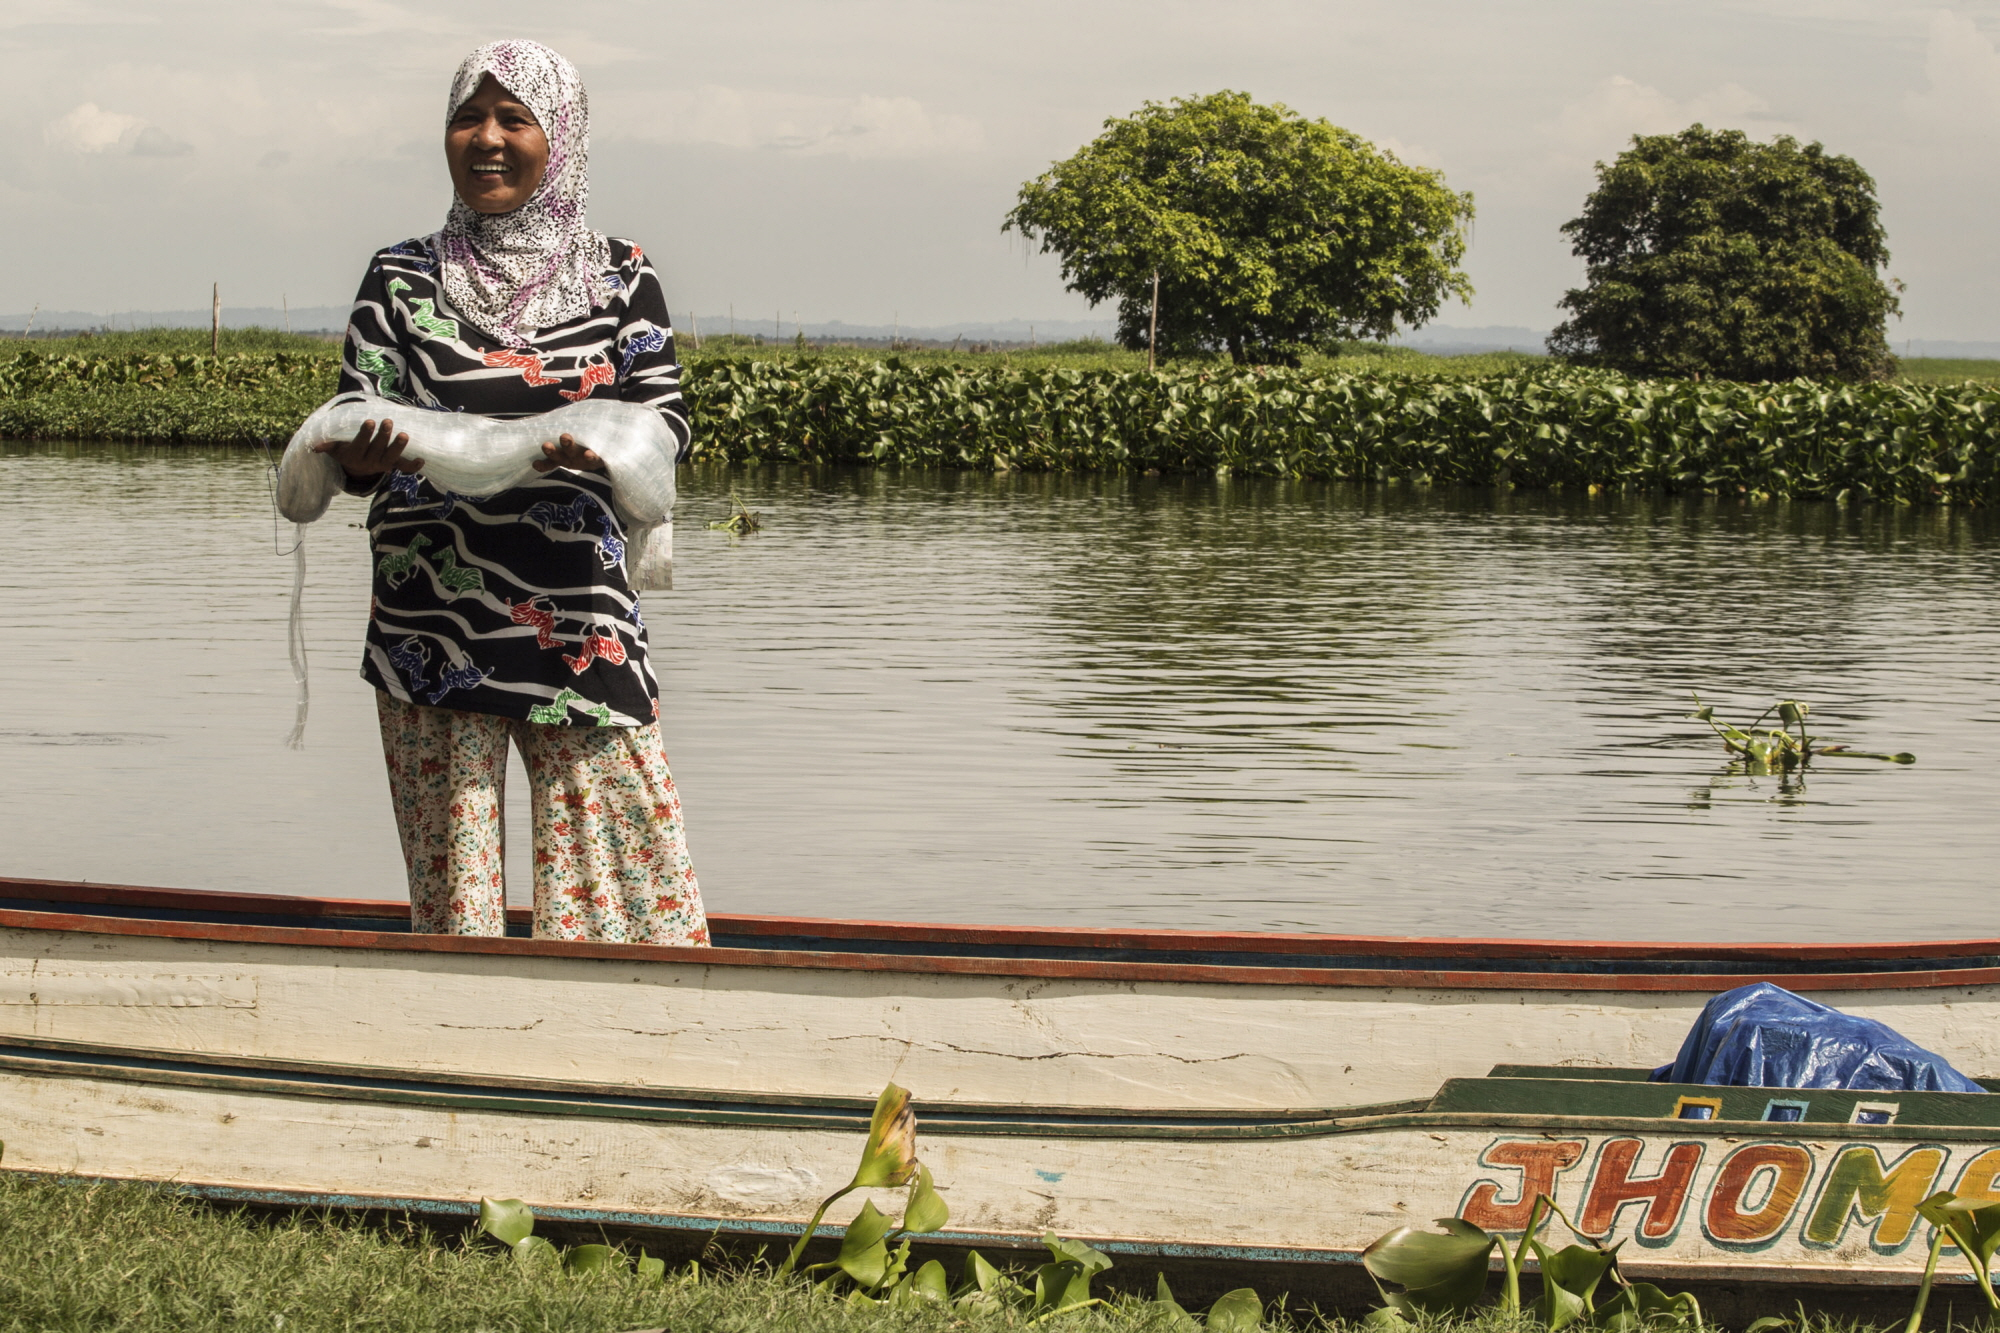 NEW HOPE. A woman fisher stands by a lake in Sitio Bulogo, Baranggay Matilac in Pigkawayan municipality and shows a gill net she received through FAO. Photo by Dante Diosina/FAO